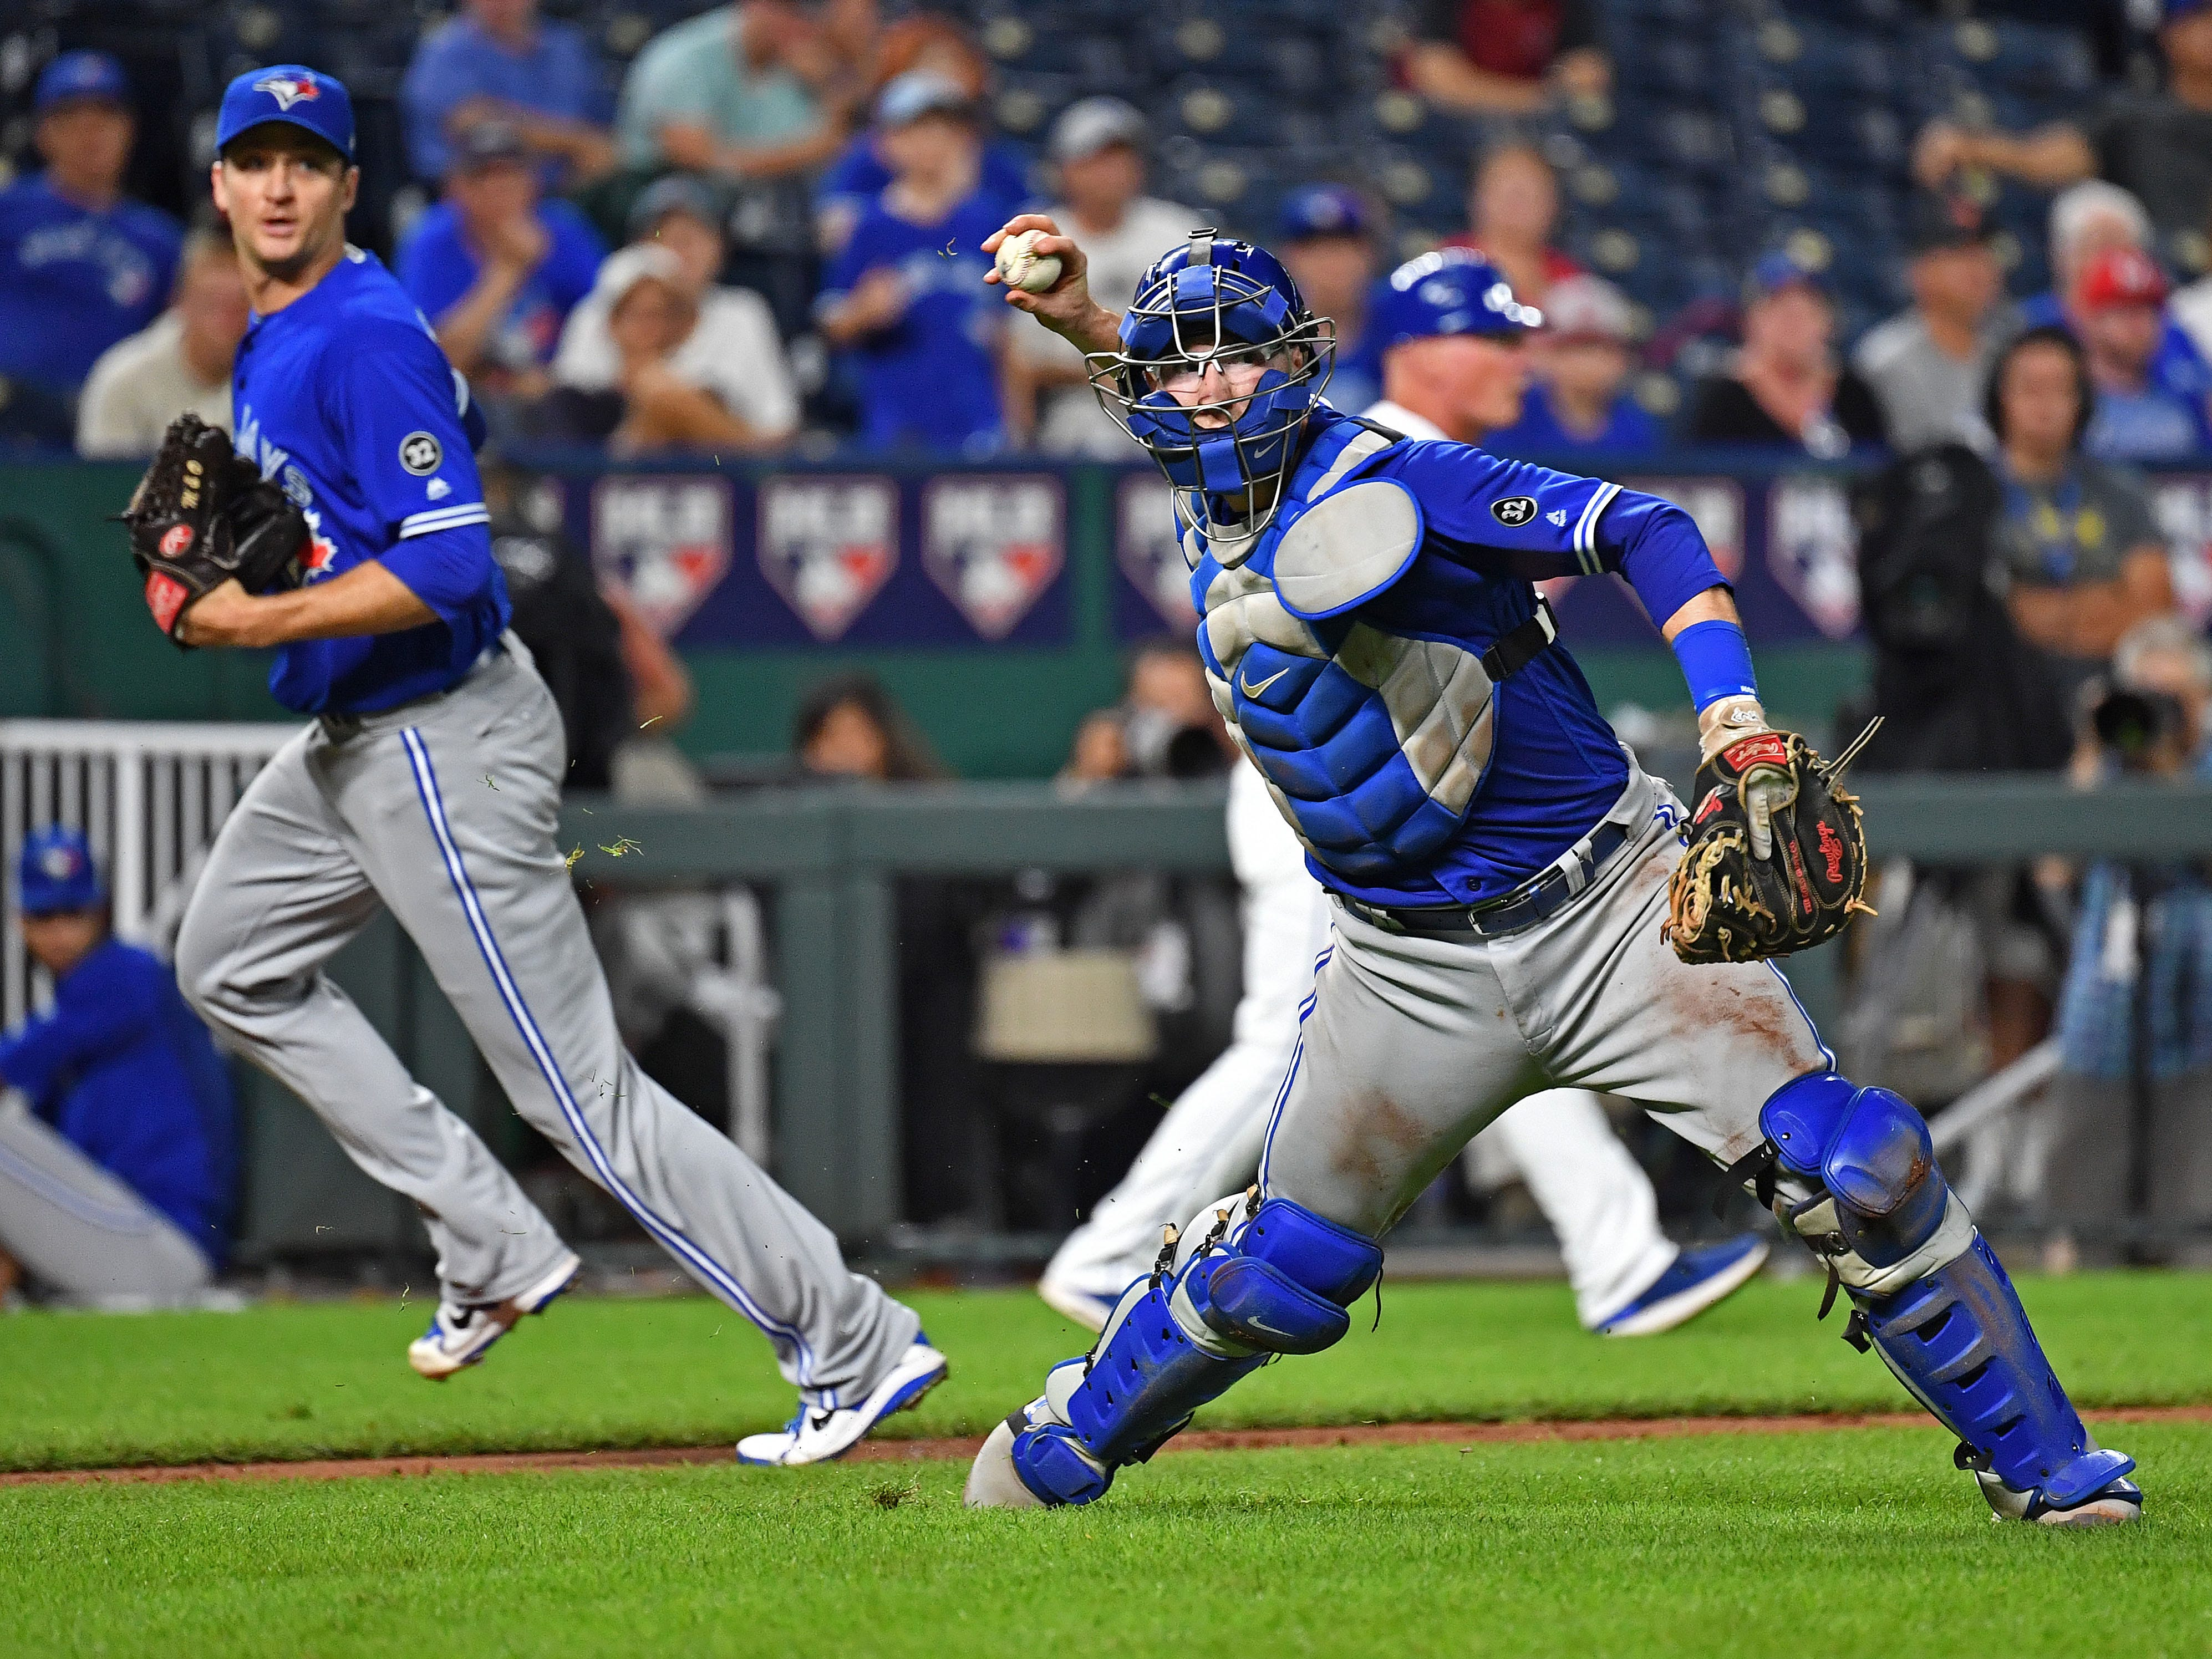 Aug 16, 2018; Kansas City, MO, USA; Toronto Blue Jays catcher Danny Jansen (9) turns to make a throw to first for an out during the sixth inning against the Kansas City Royals at Kauffman Stadium. Mandatory Credit: Peter G. Aiken/USA TODAY Sports